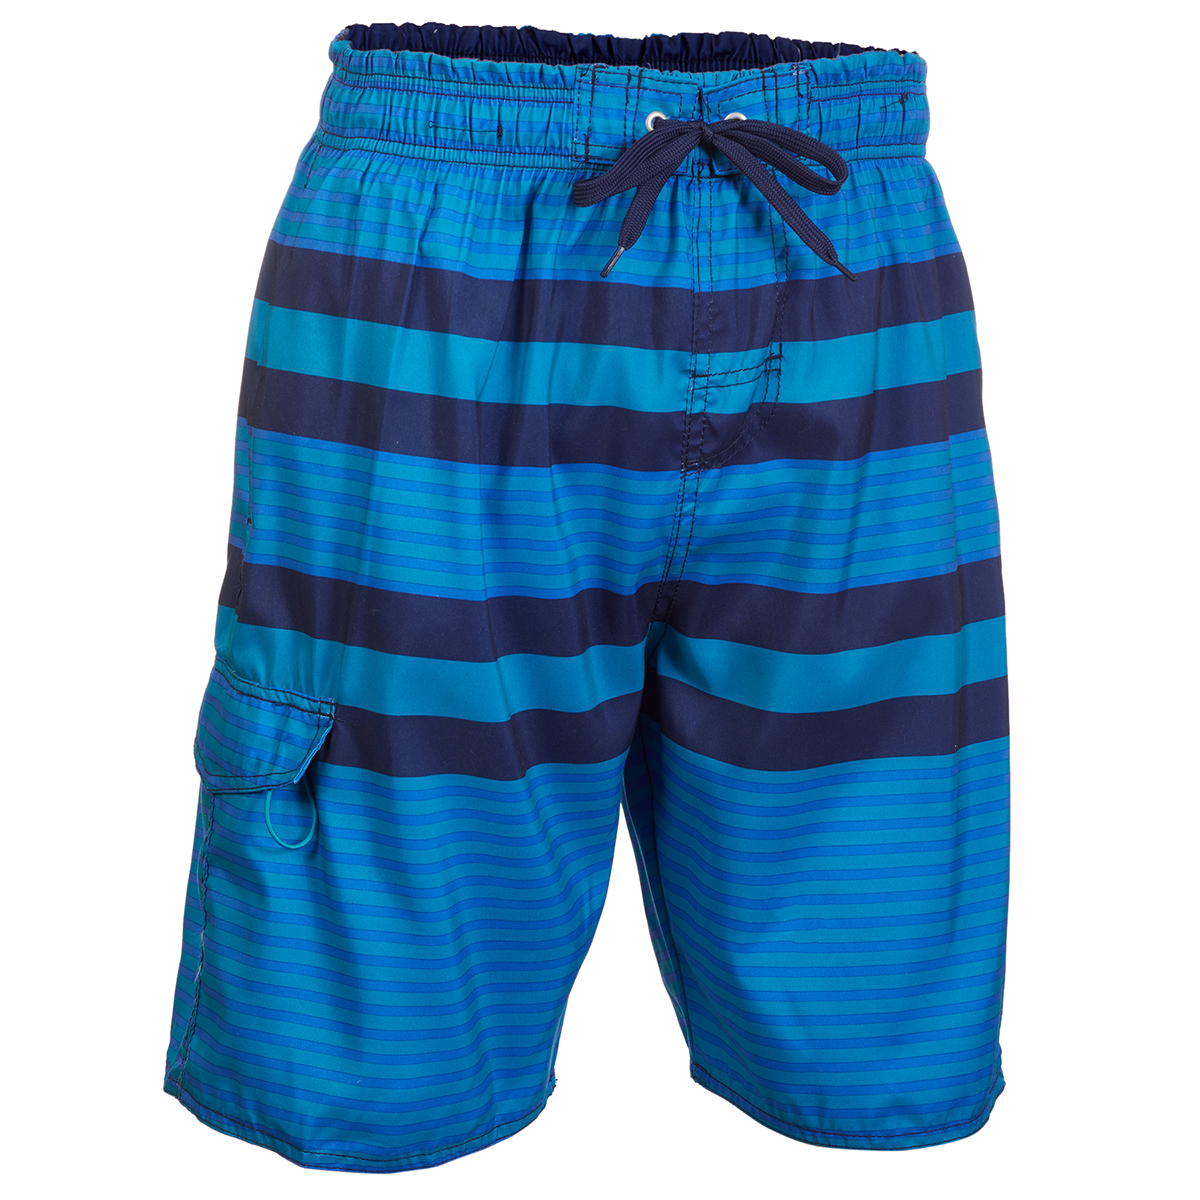 No Fear Men's Swimsuit - Blue, S